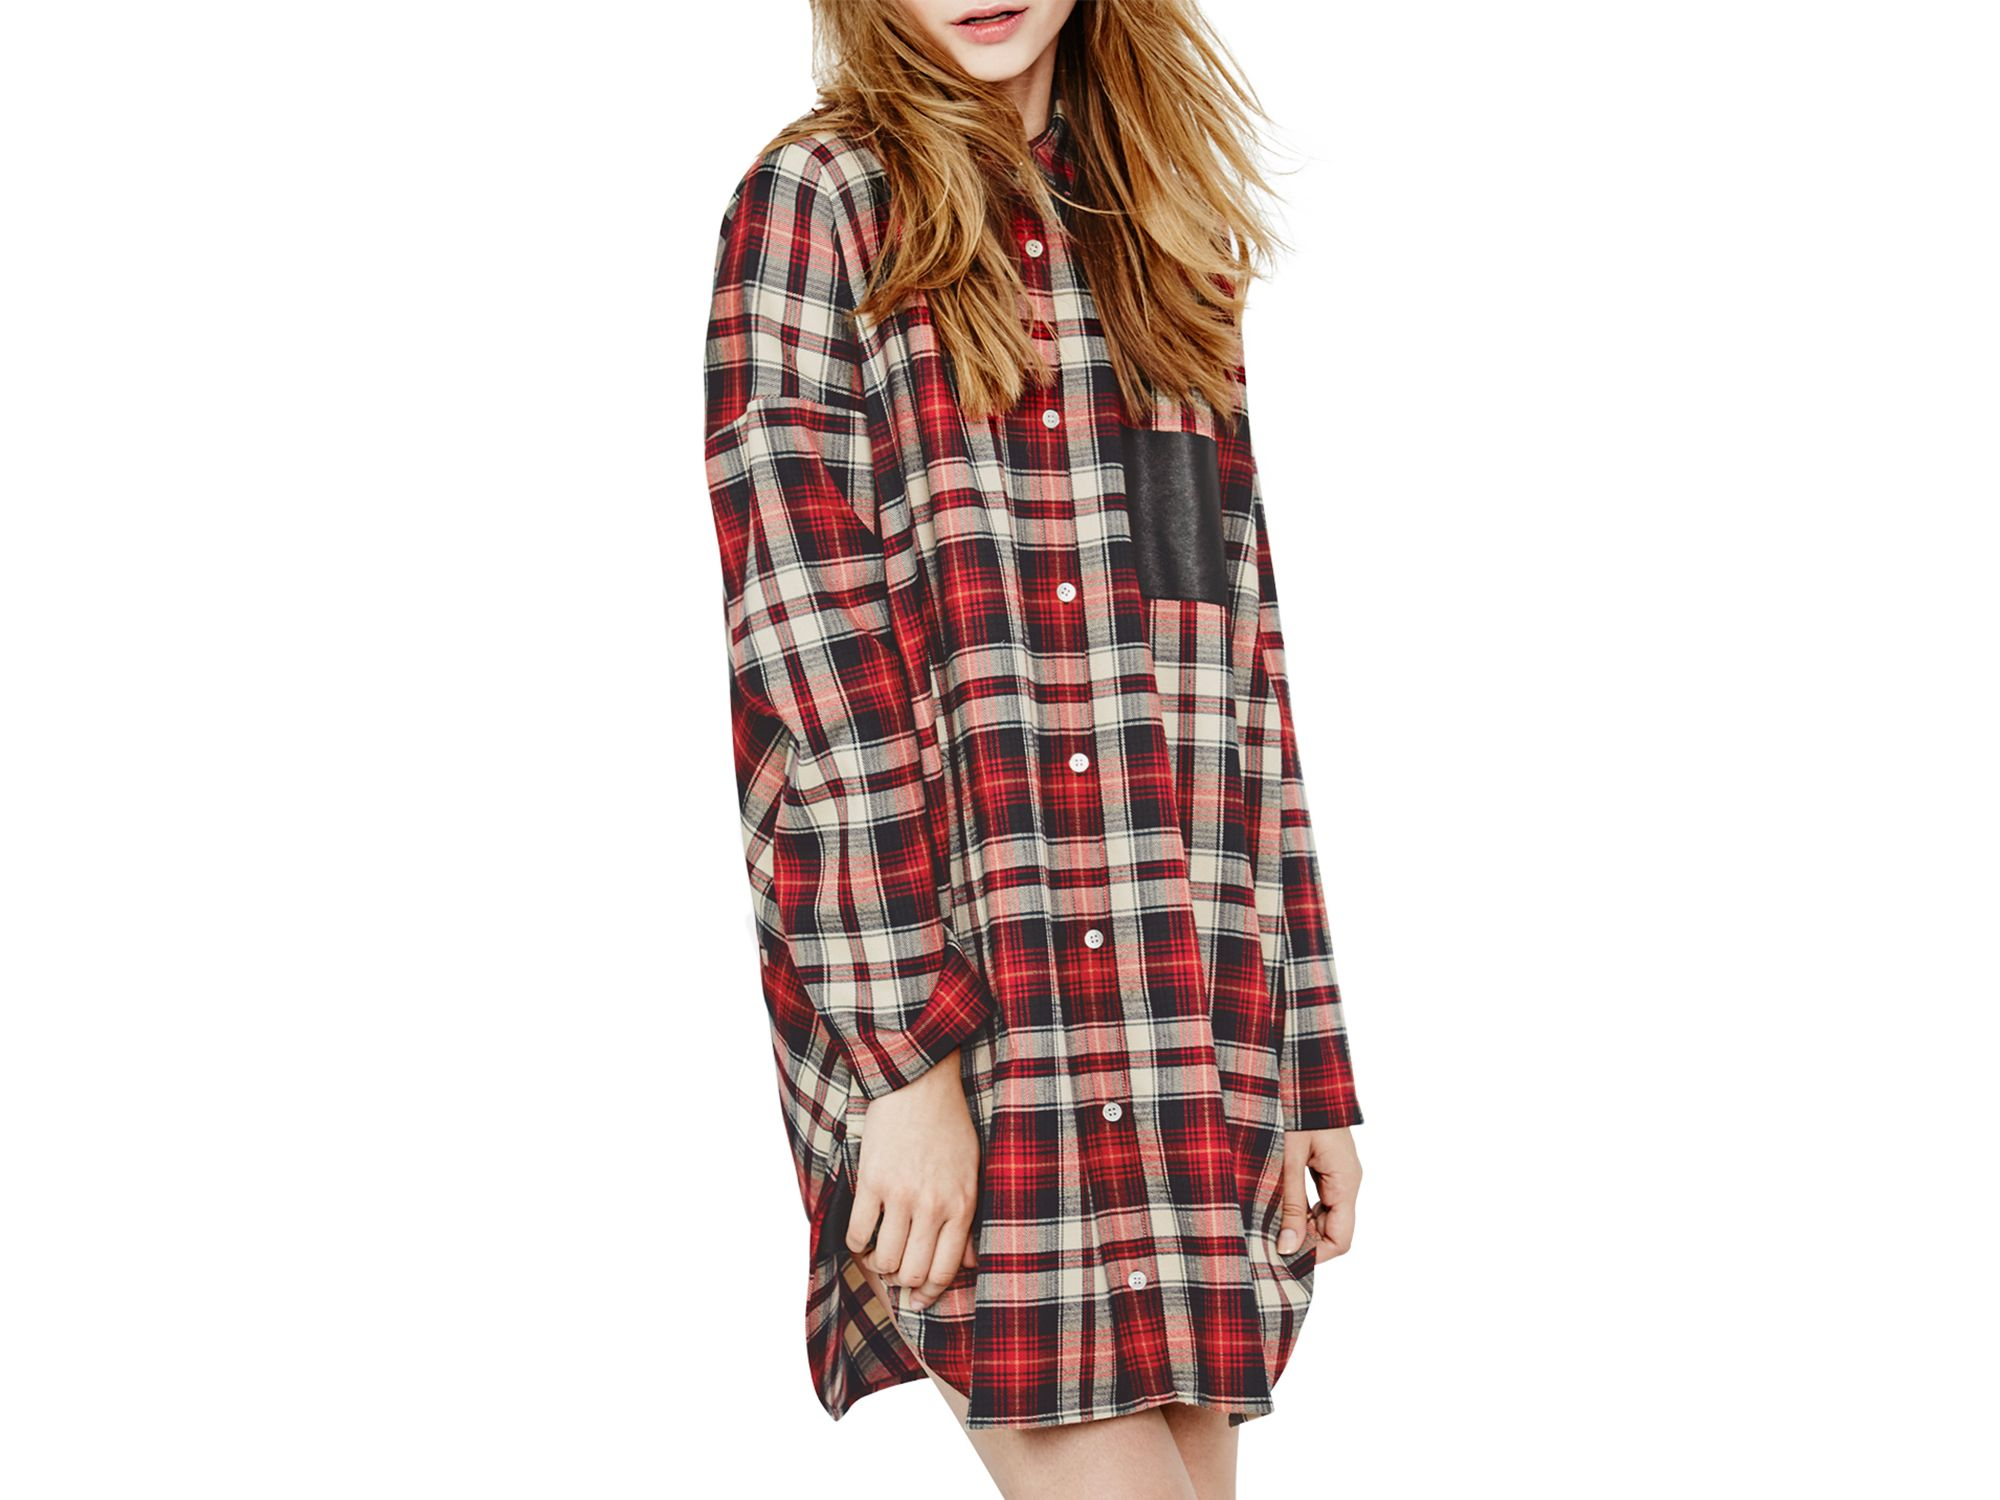 Lyst maje grungy plaid shirt dress in red for Red plaid dress shirt